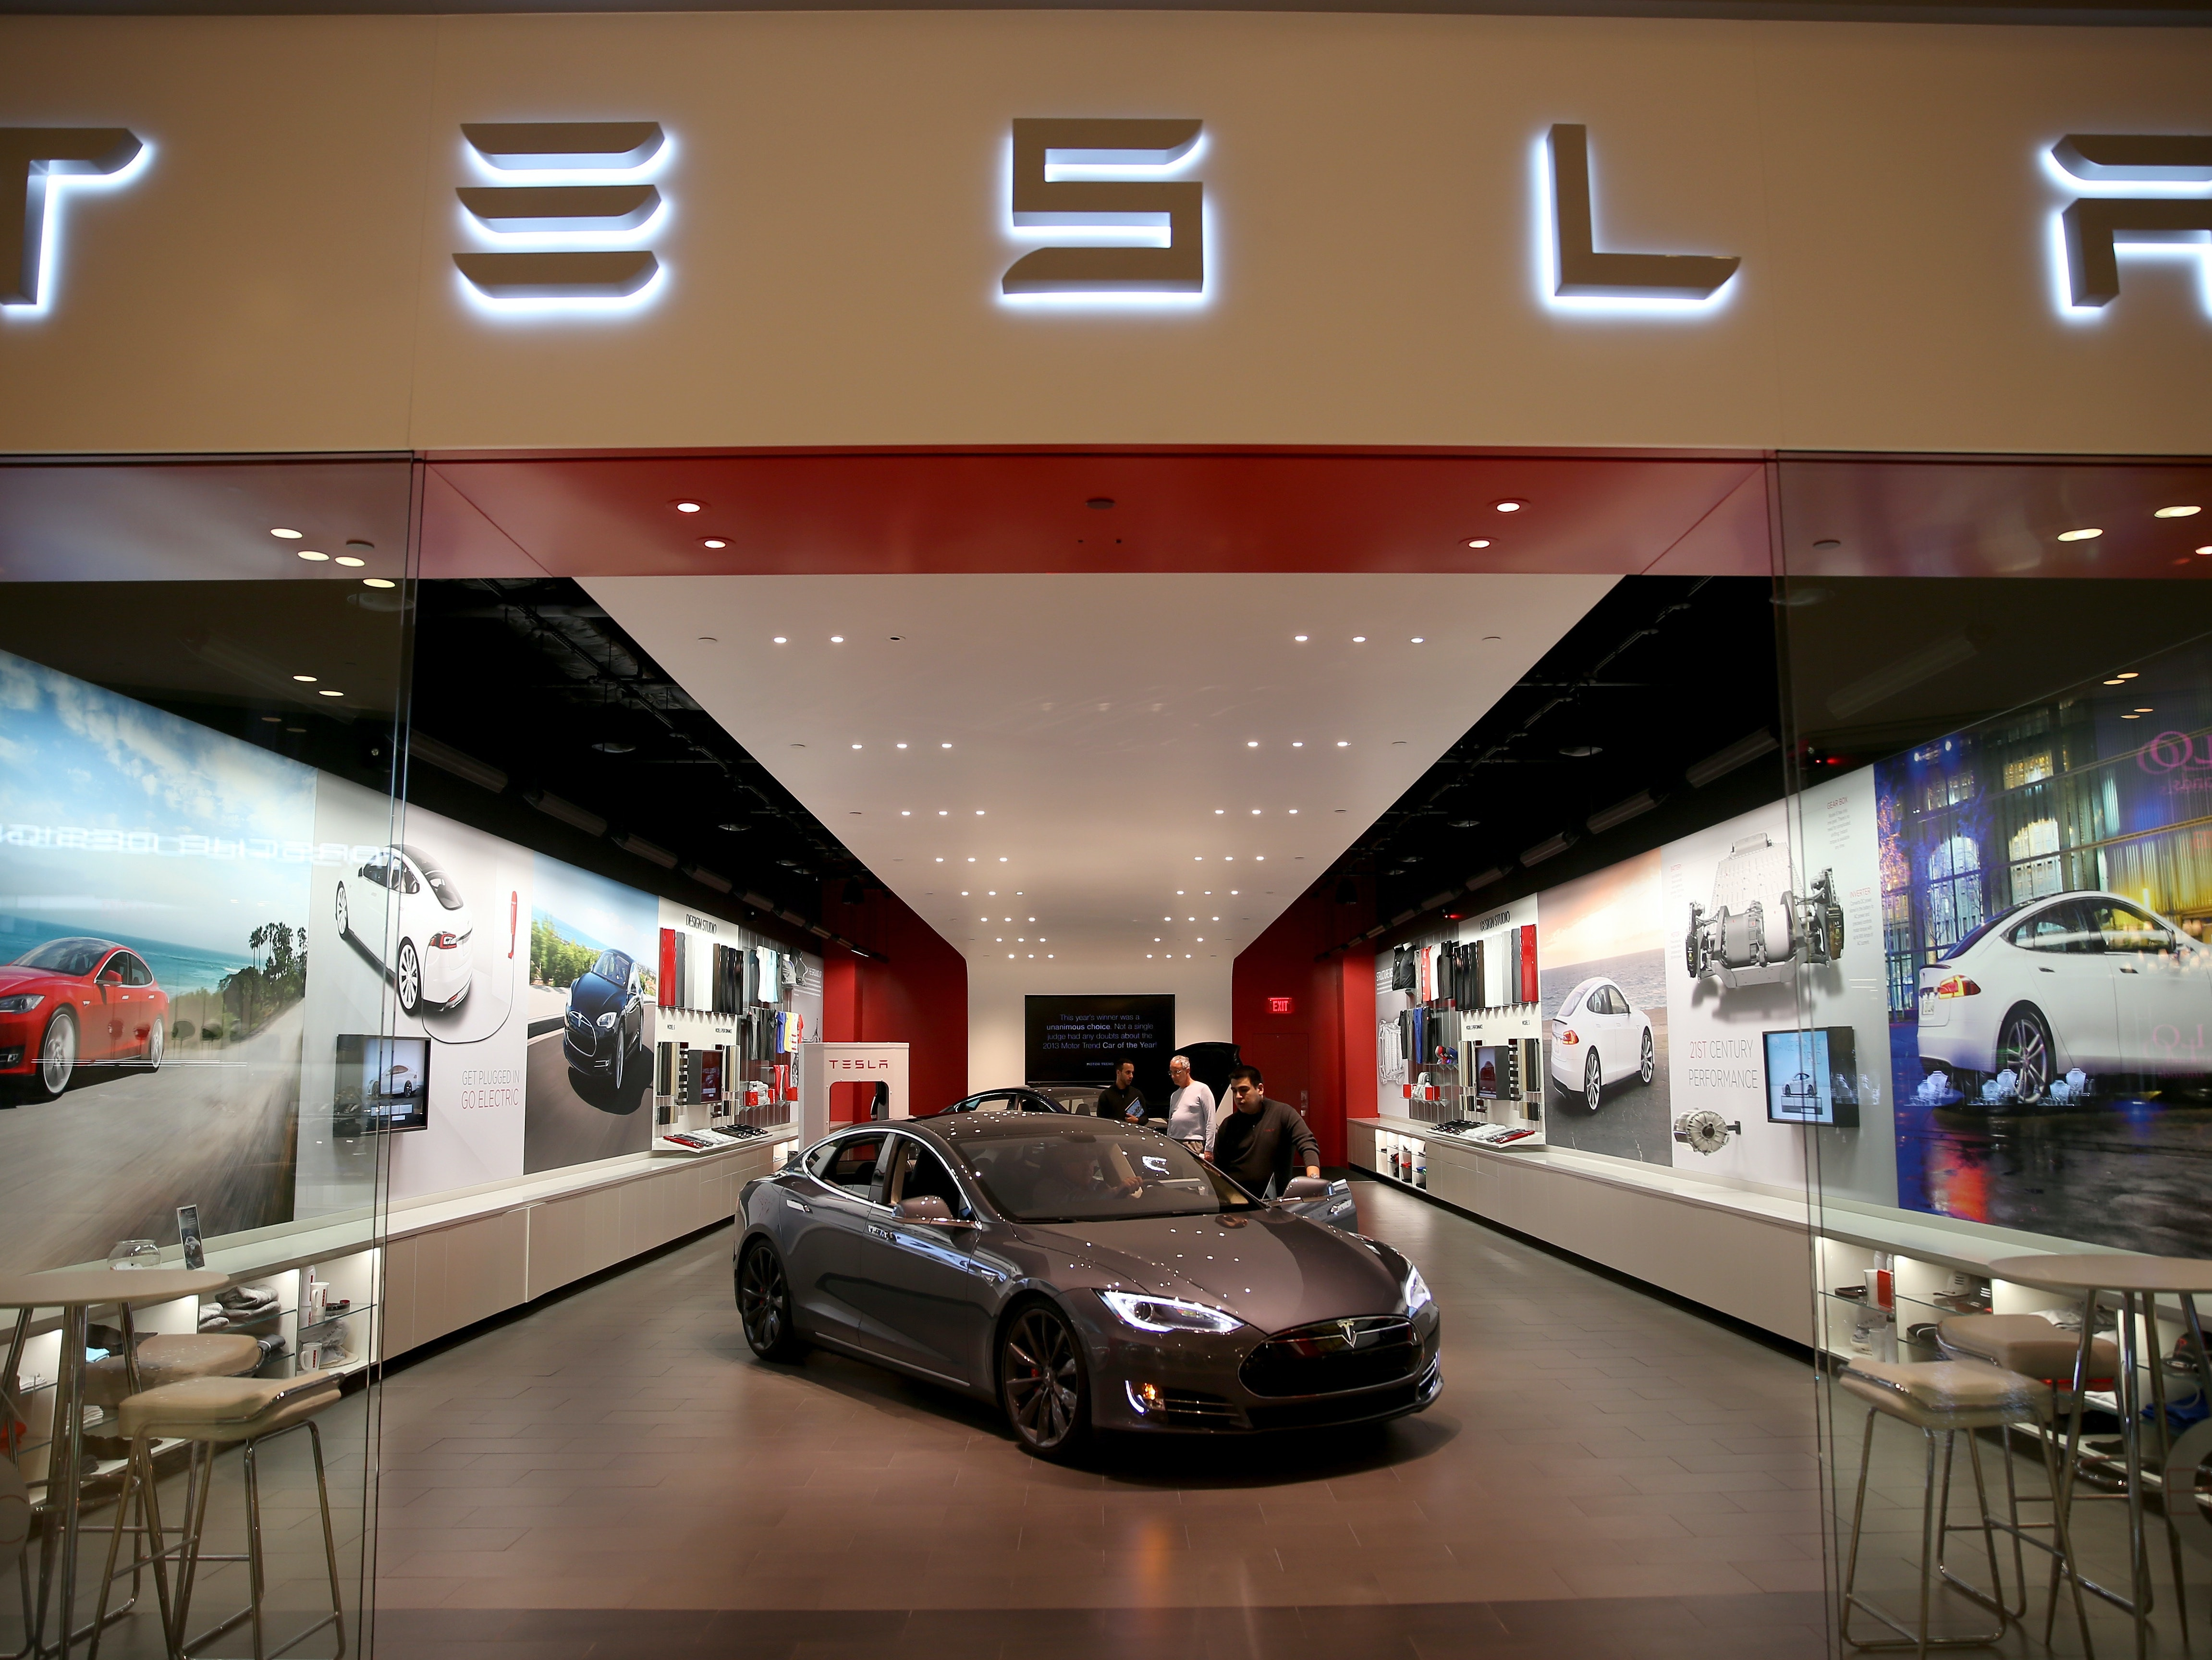 Germany to Tesla: Stop Saying Autopilot, Your Cars Need Drivers